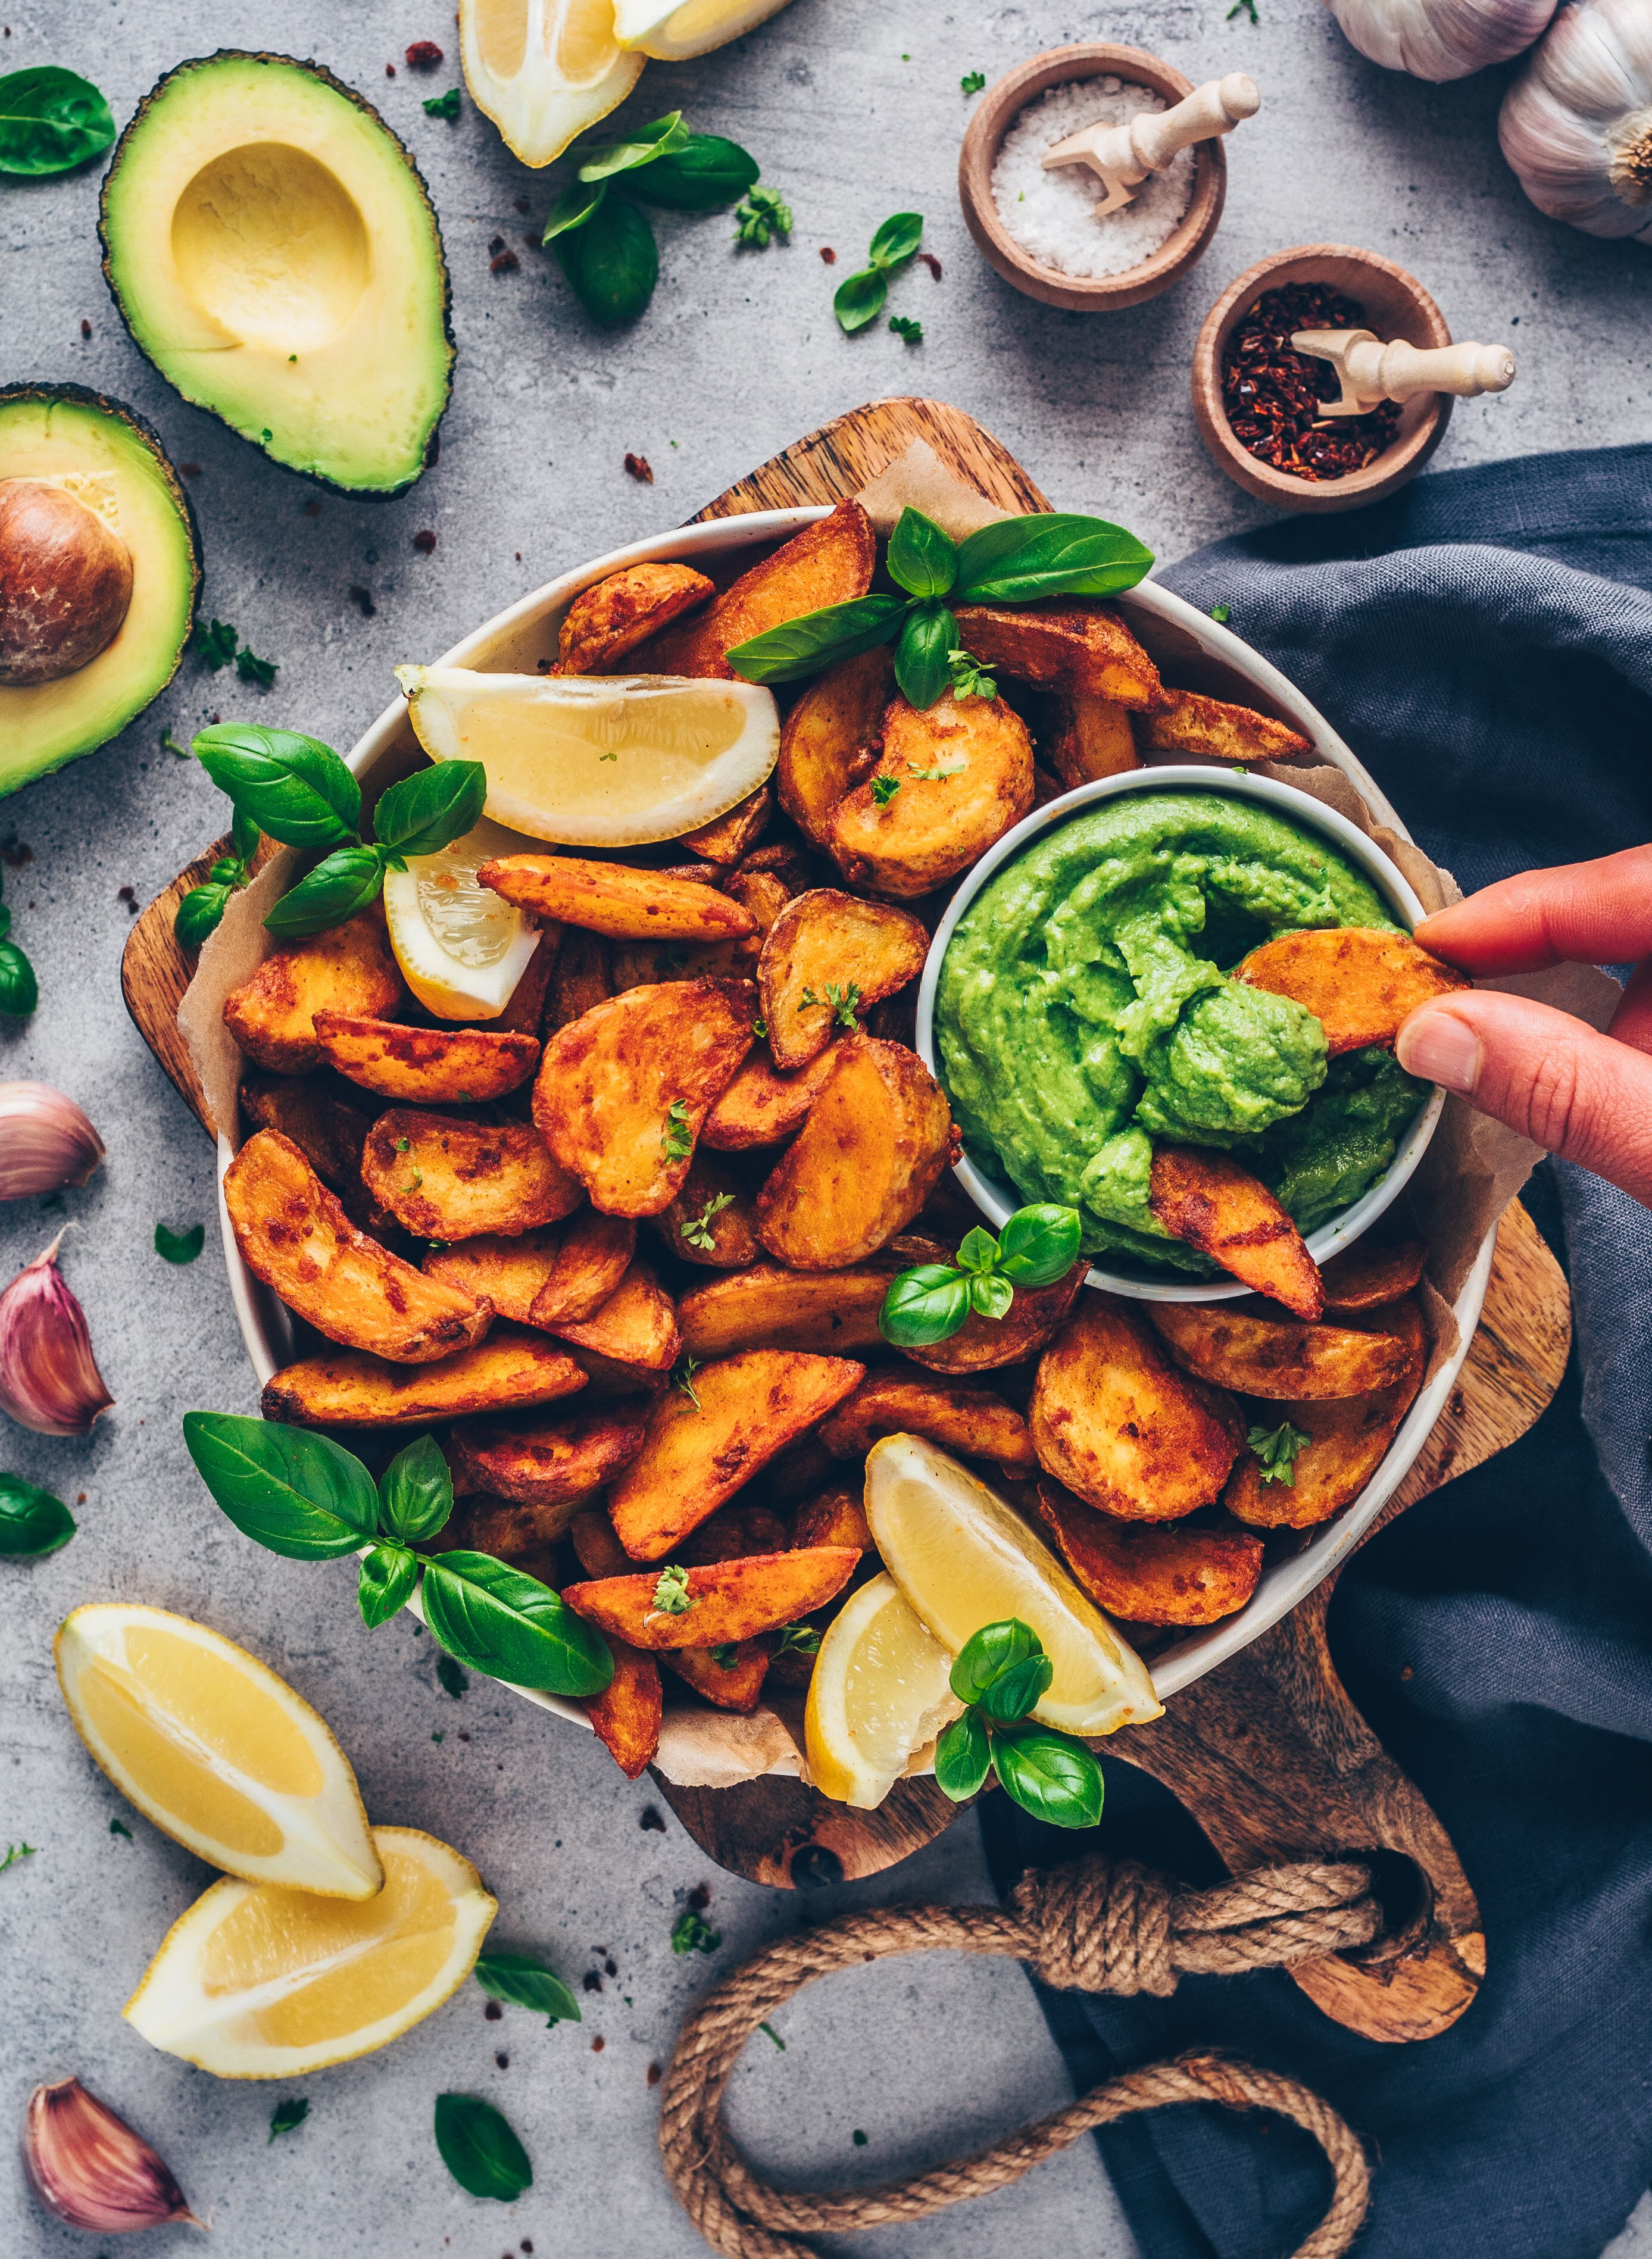 Crispy Potato Wedges with Guacamole